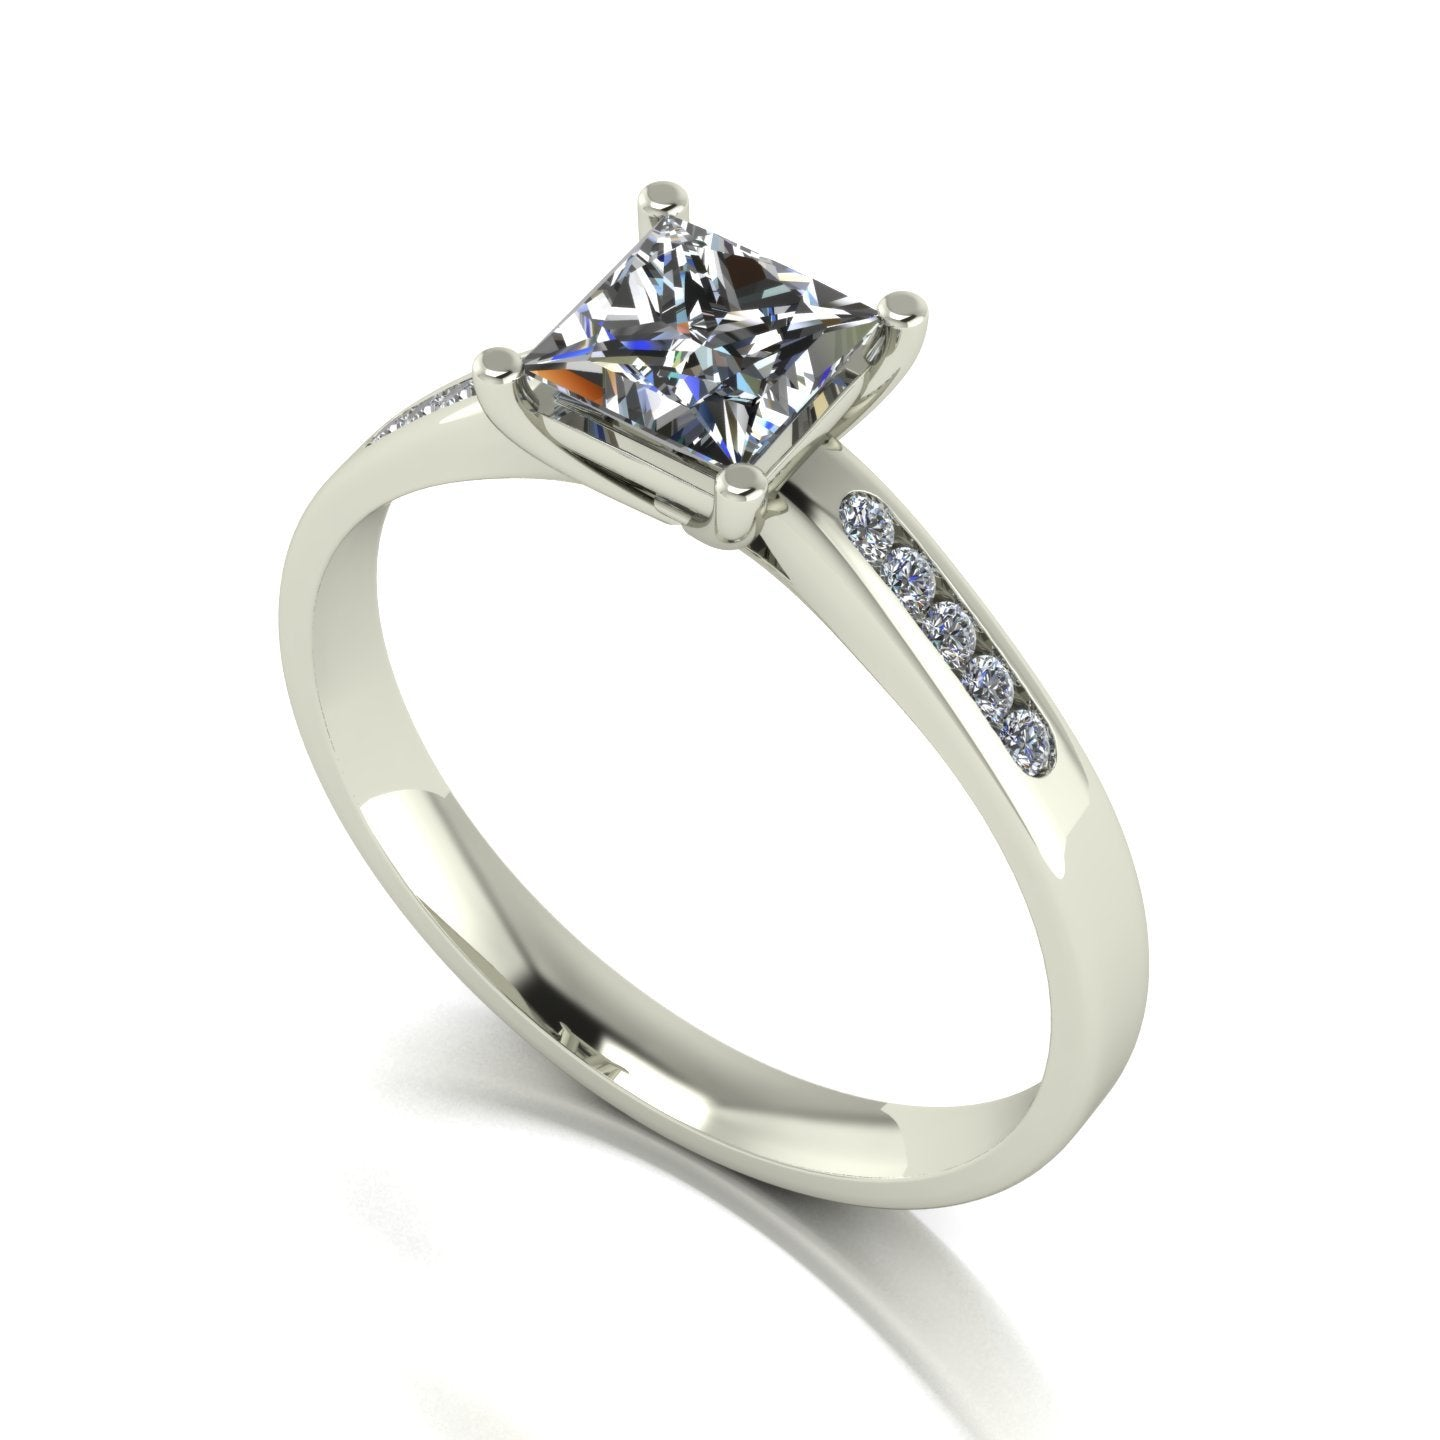 1.15ct (1x 5.5mm Sqr & 10x 1.3mm Rnd) Square & Round Moissanite Set Shoulders Single Stone Ring